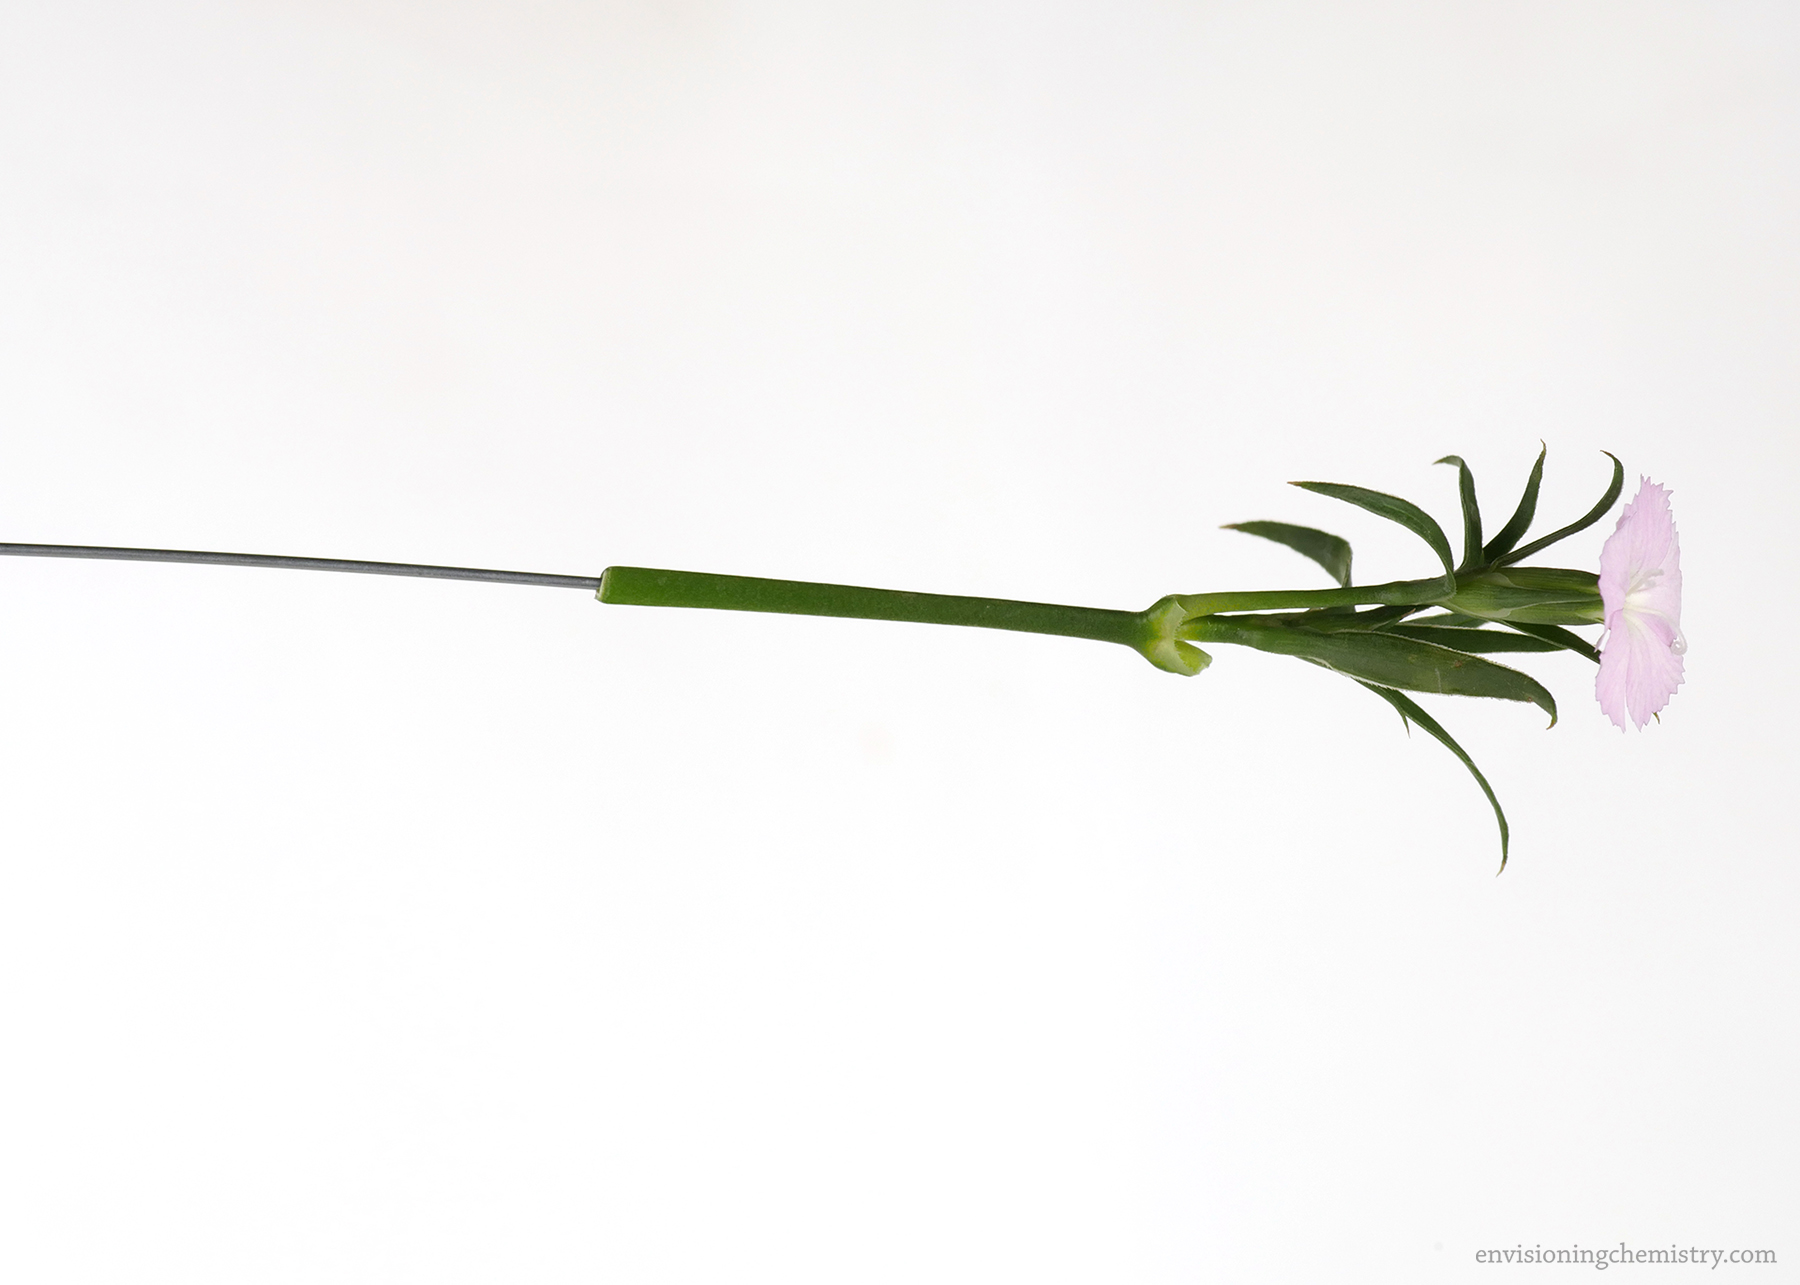 Fixing the flower with an iron wire.